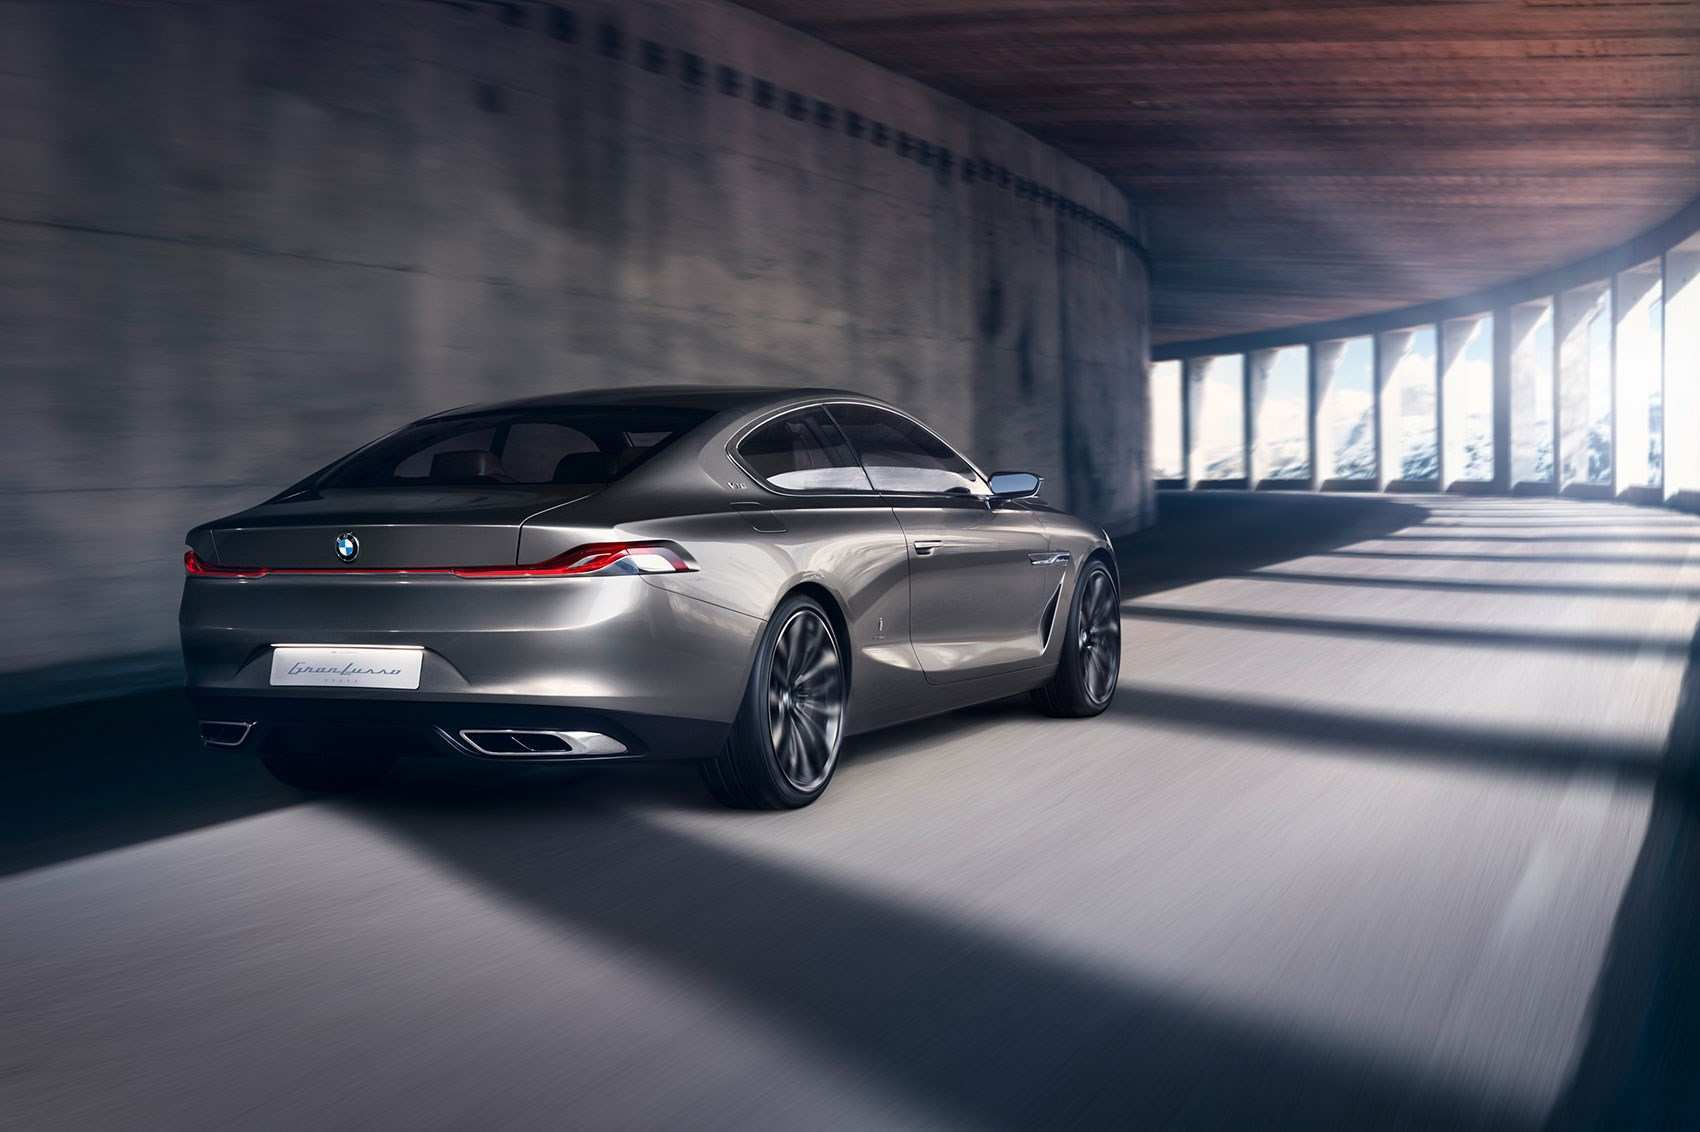 96 All New 2020 Bmw 9 Serisi Price And Release Date